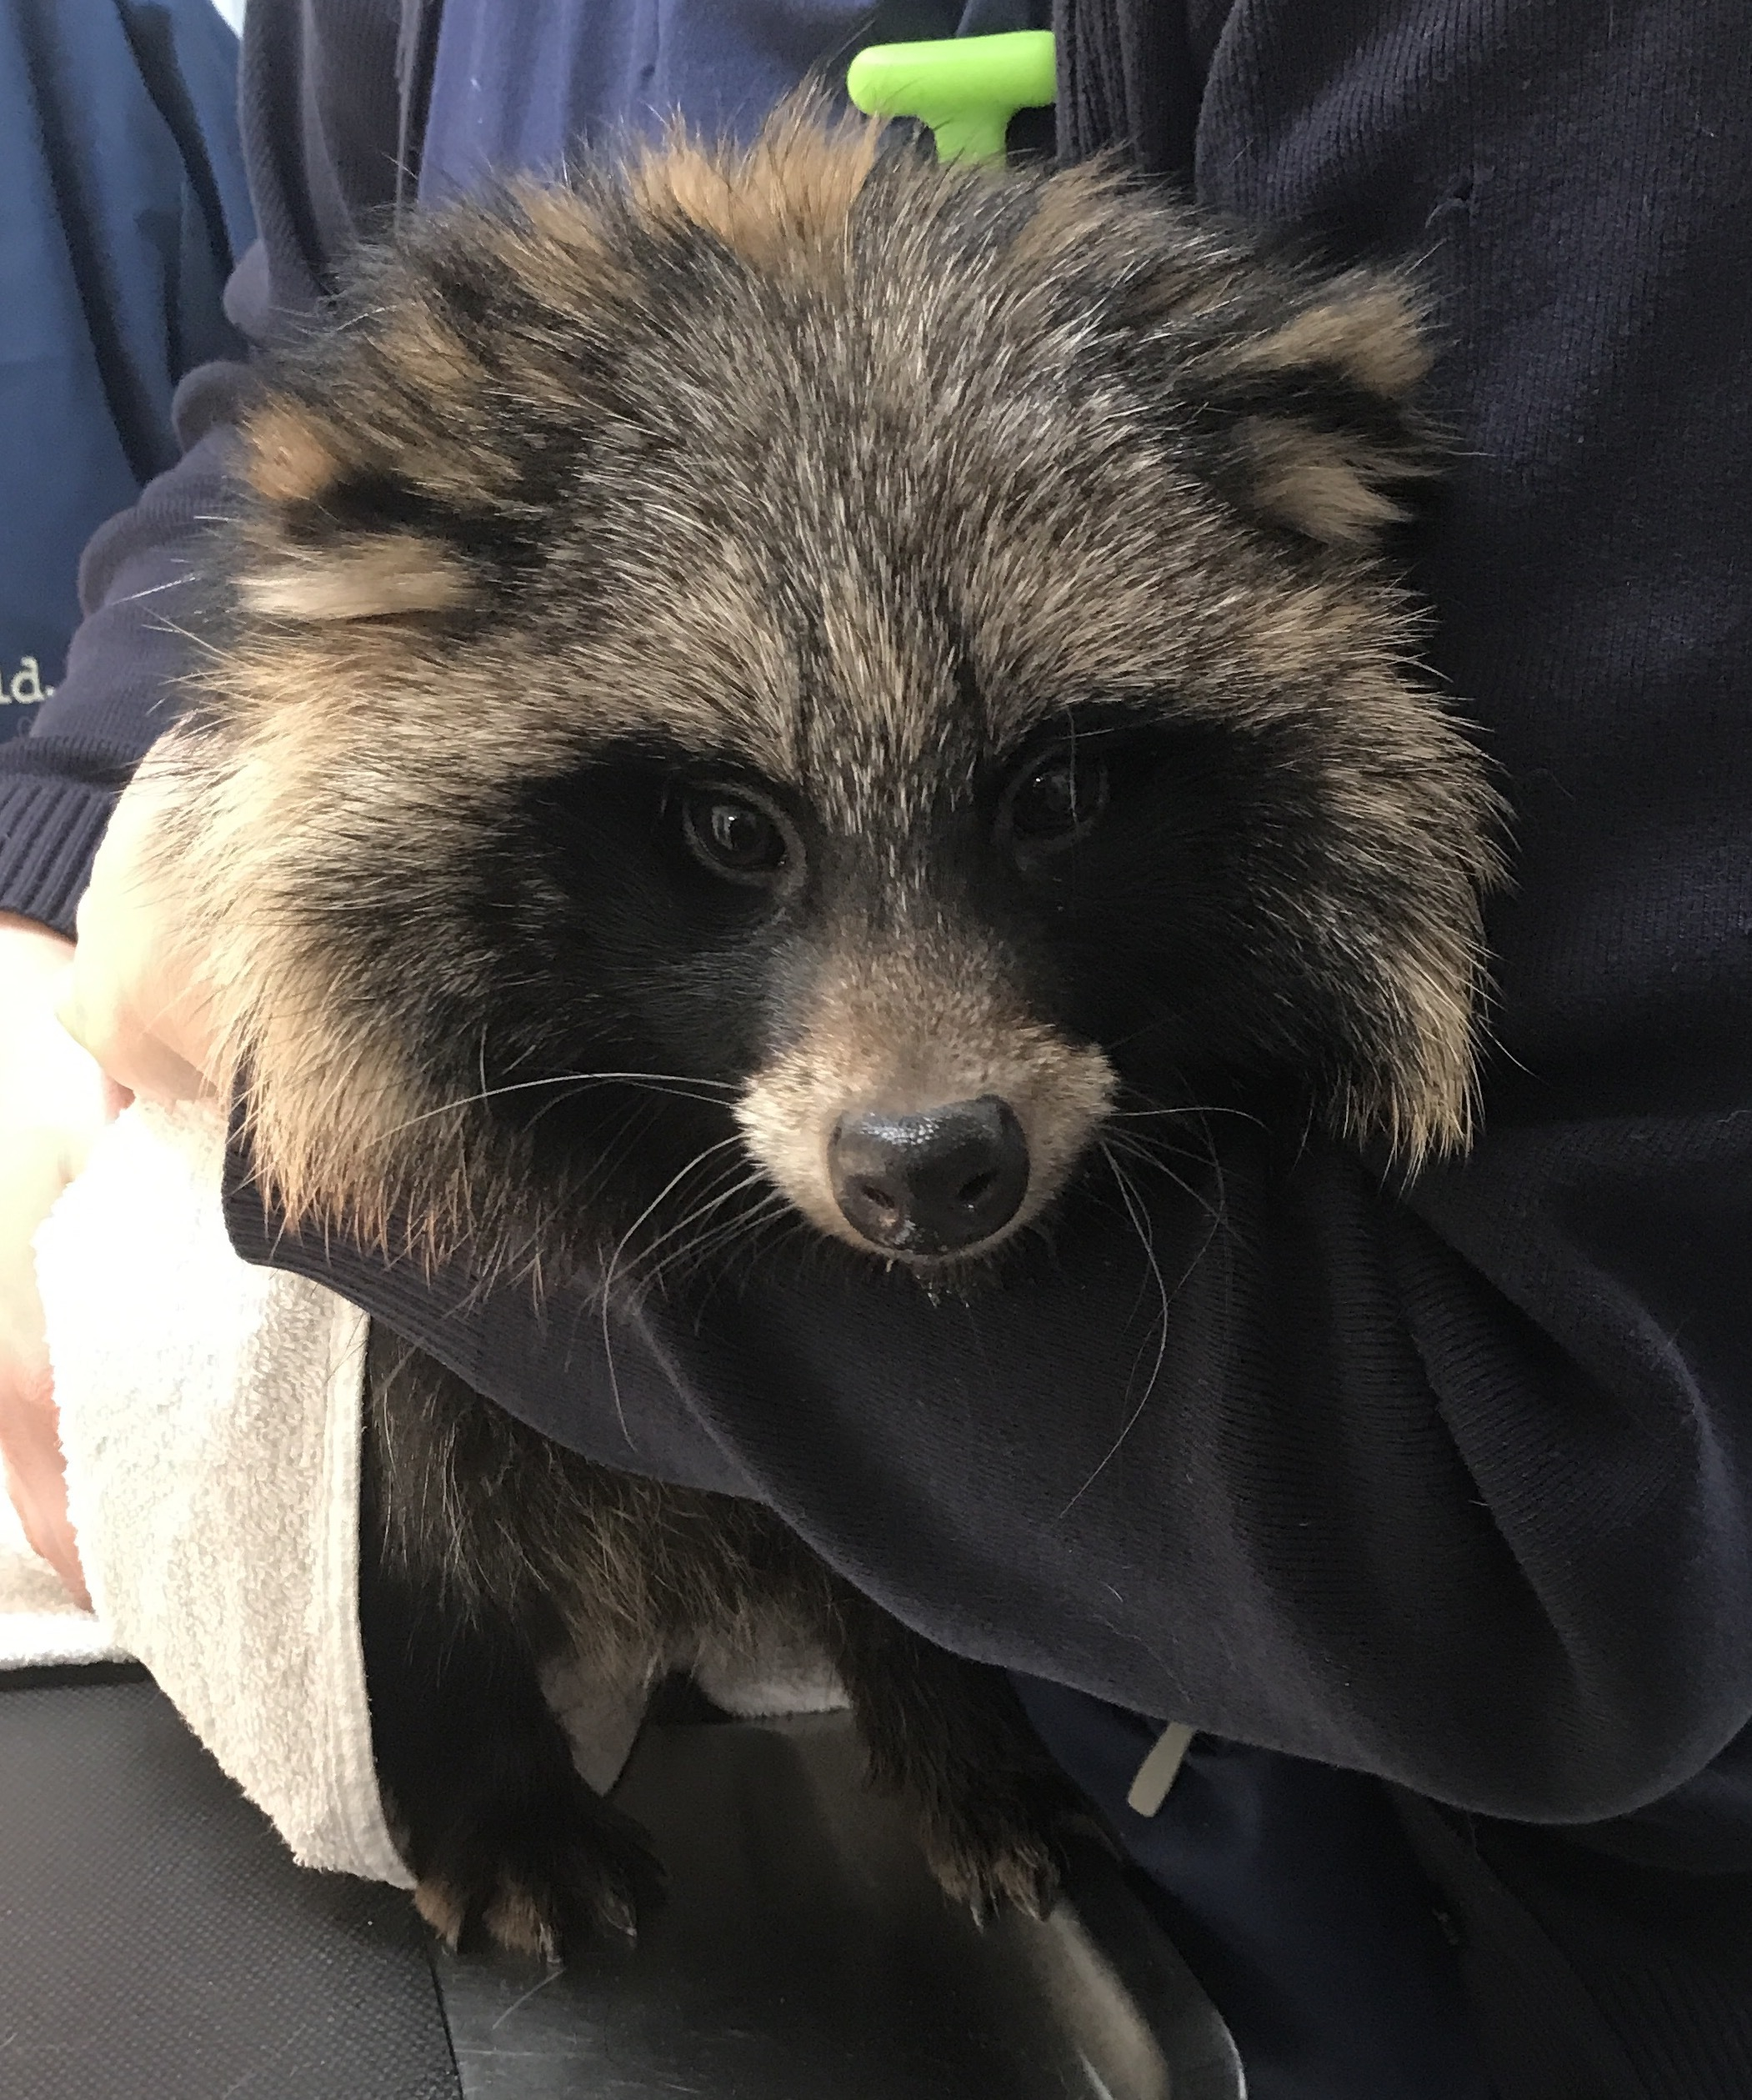 RESCUED ANIMALS: Above, a racoon dog and below, a tiny tortoise, both rescued by RSPCA officers in Durham